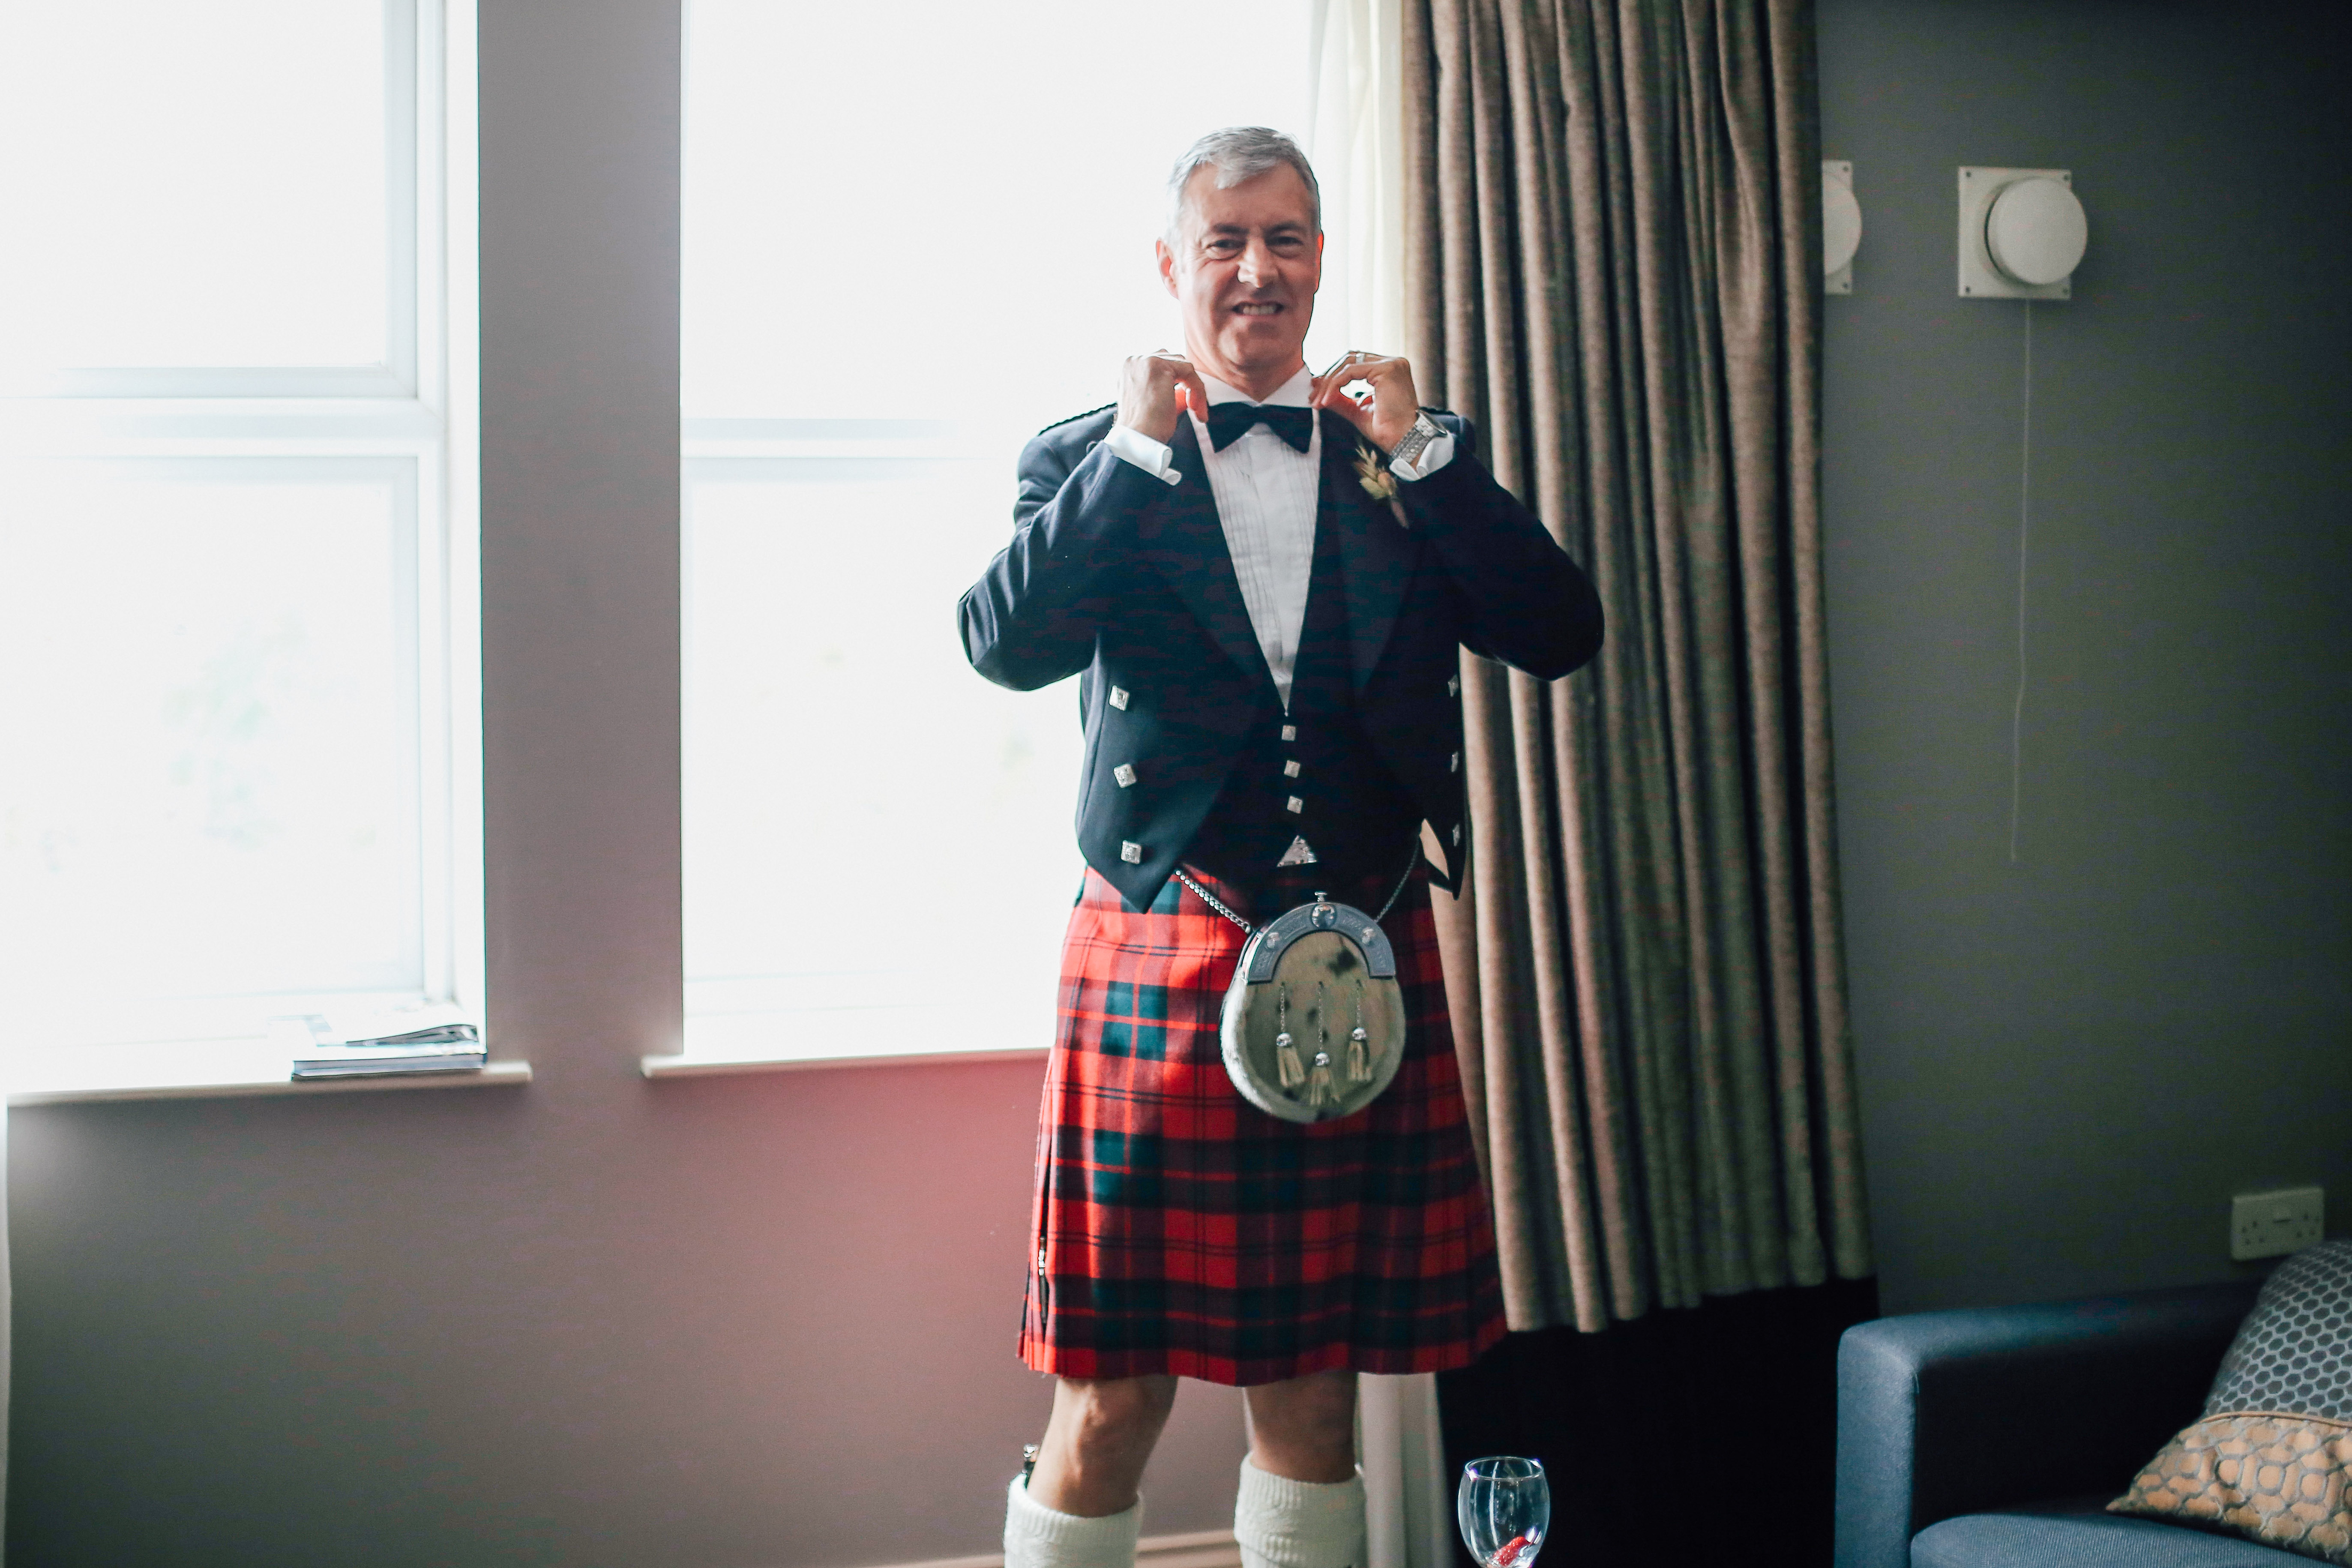 Father of the bride in a kilt Wedding Photographer Manchester